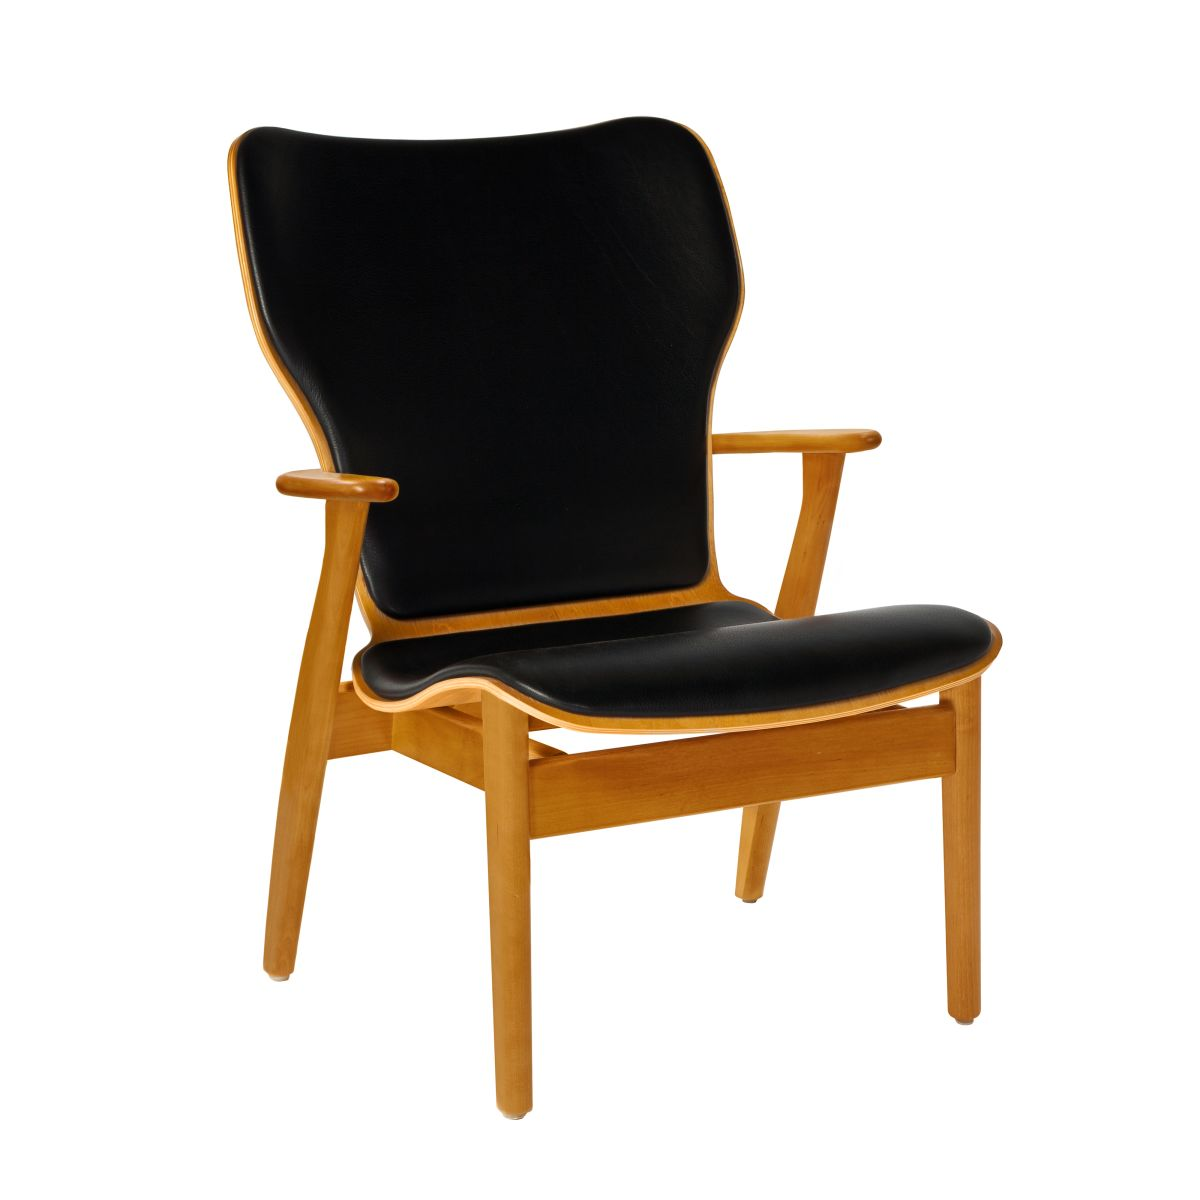 Domus Lounge Chair Honey Stained Birch Leather Upholstery 2494516